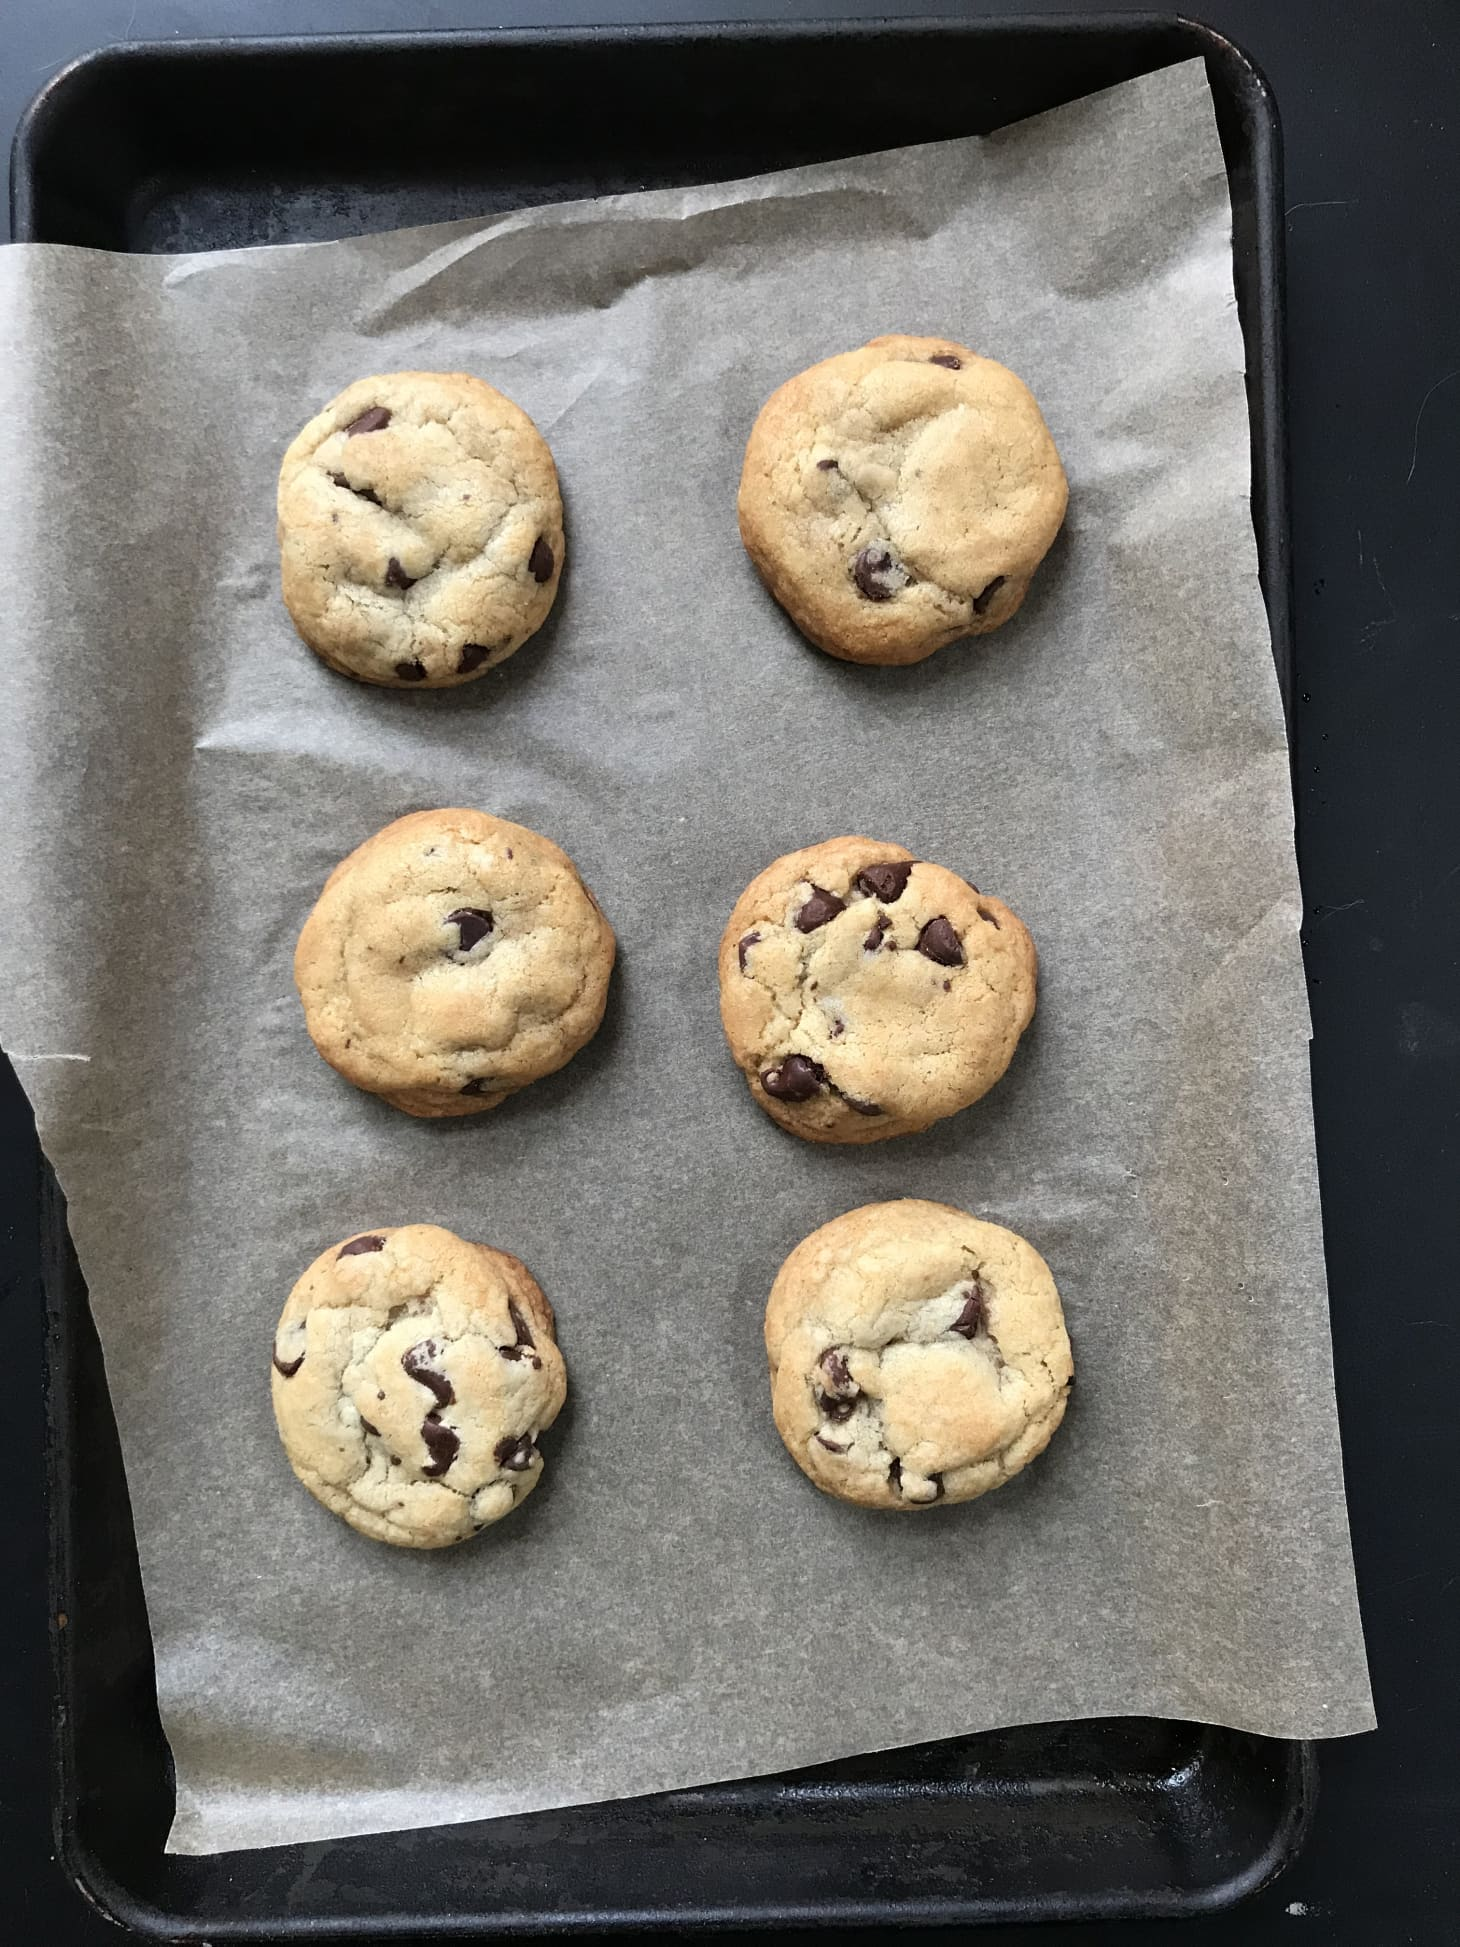 I Tried Alton Brown's Chocolate Chip Cookie Recipe | Kitchn